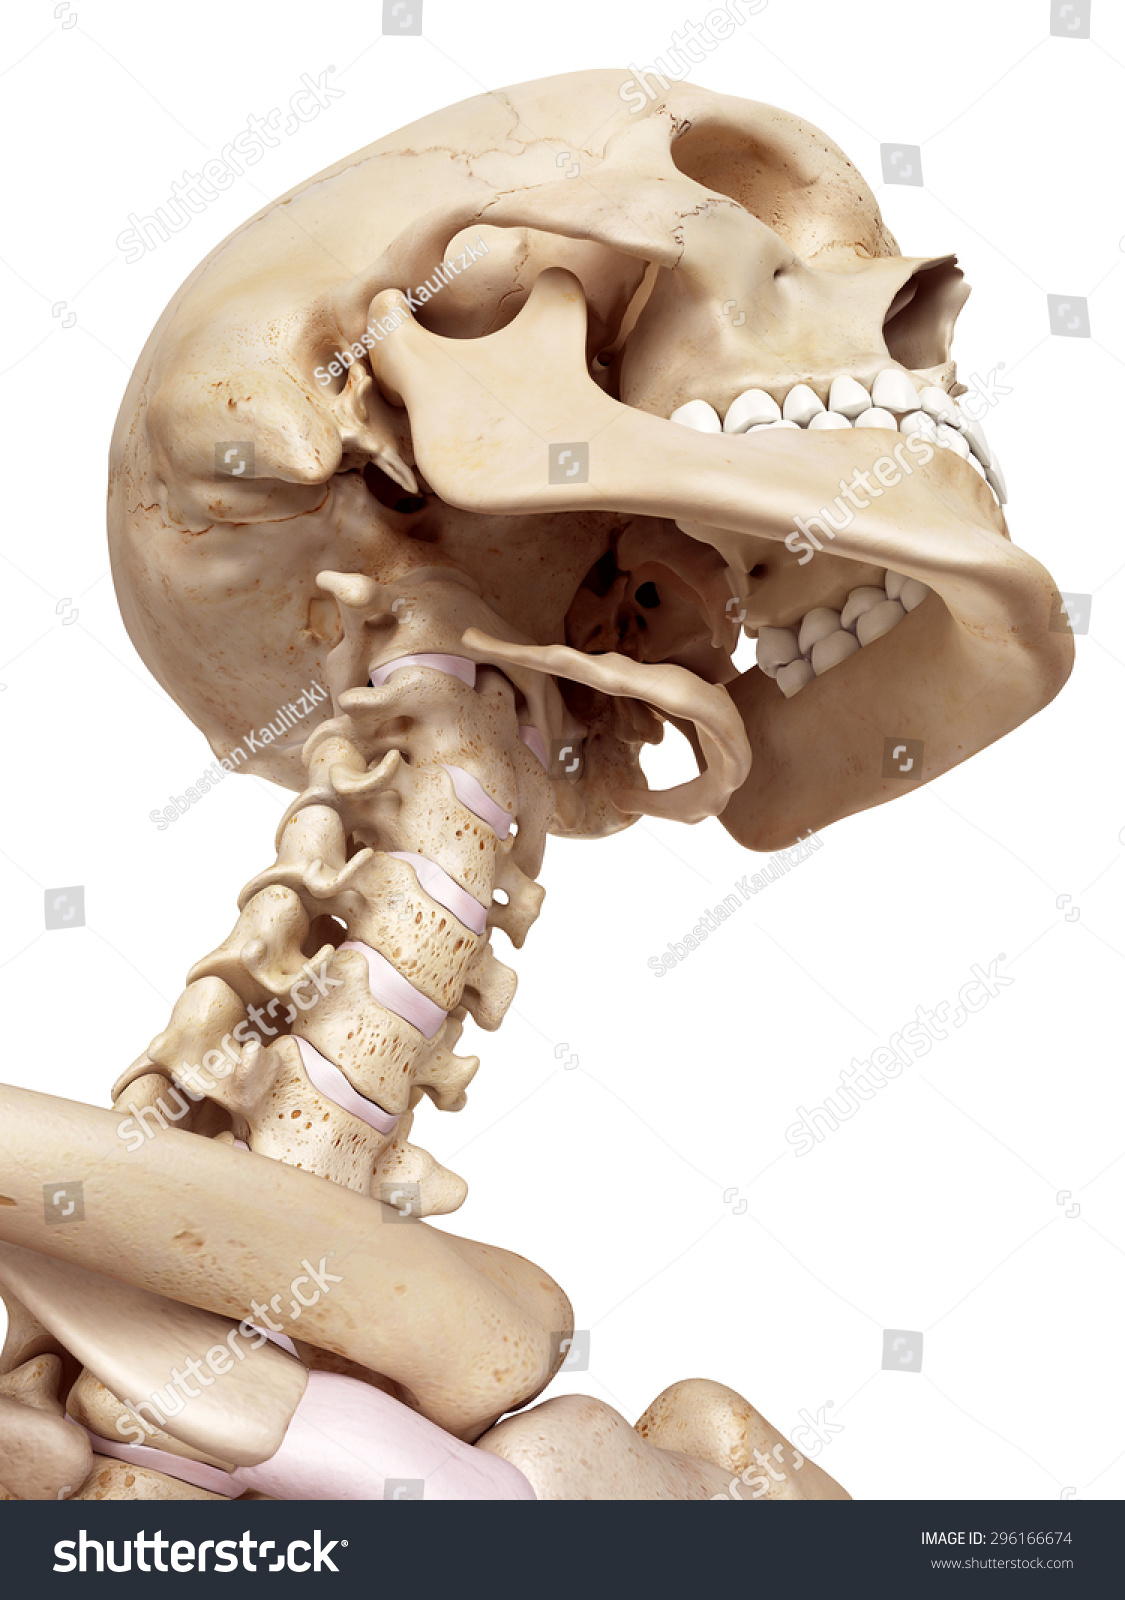 medical accurate illustration of the human skull and neck